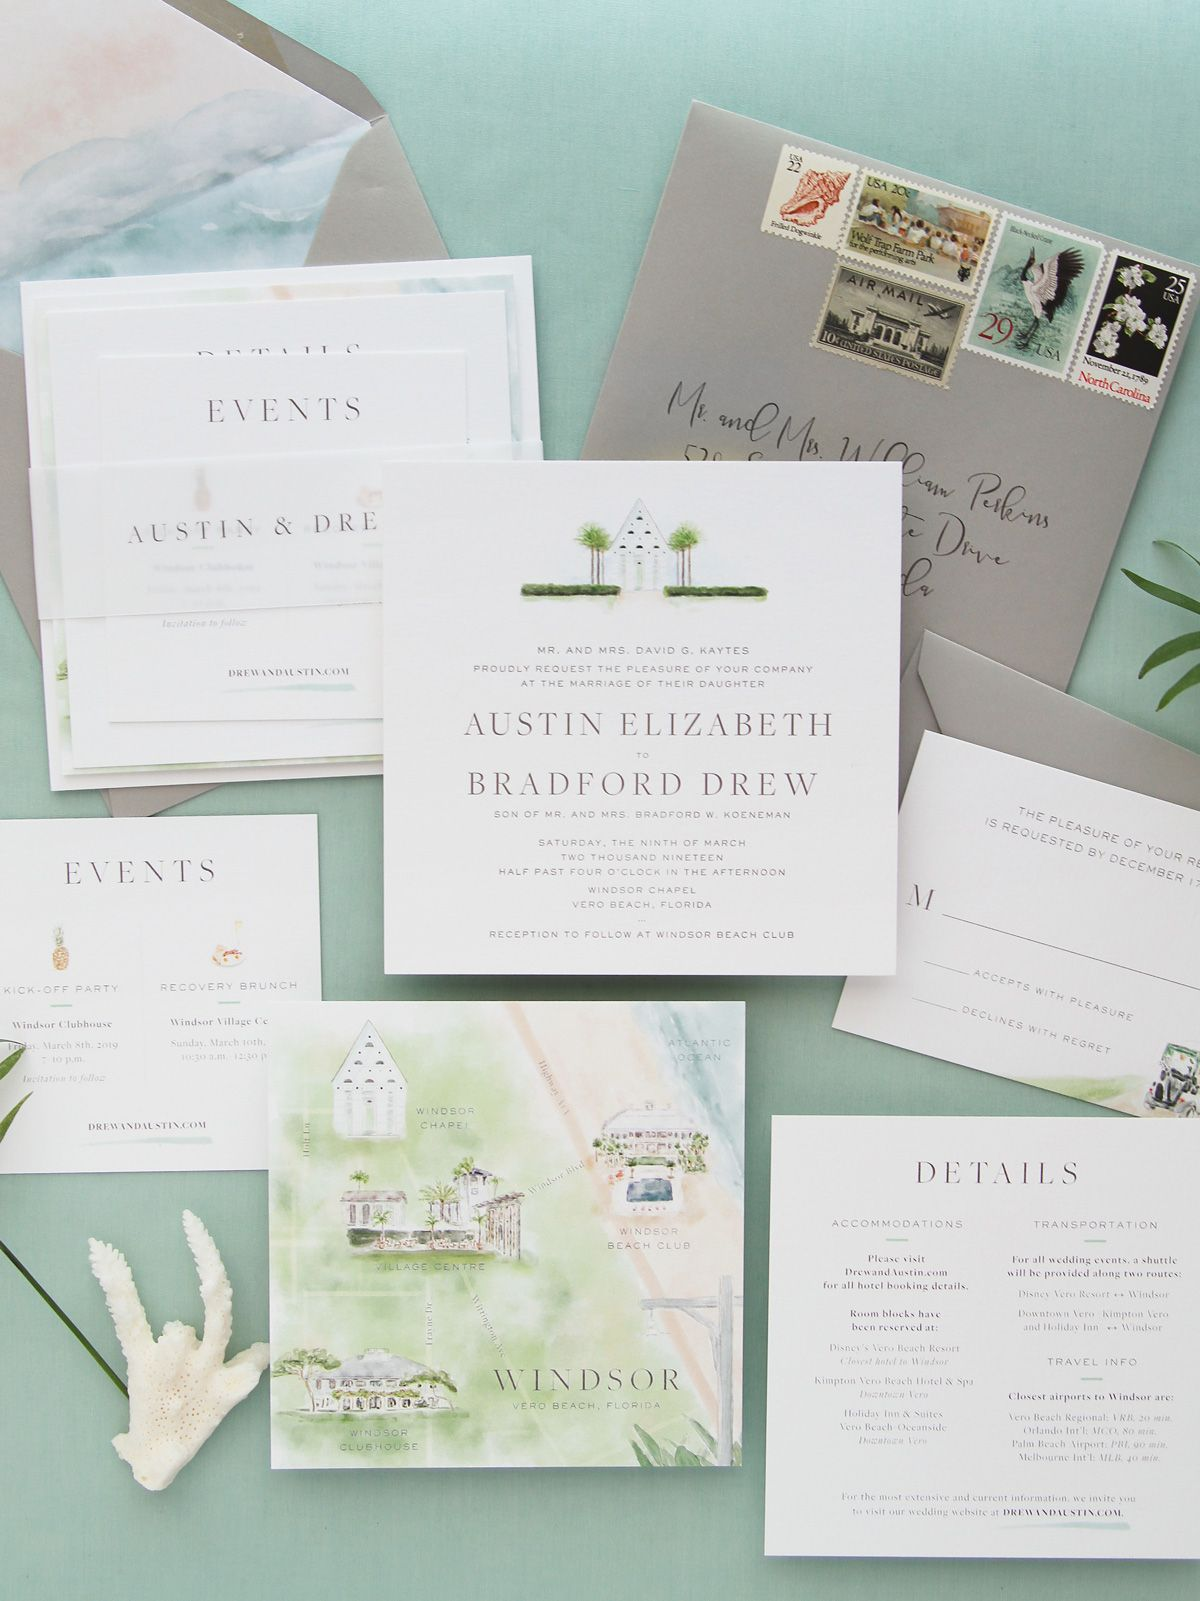 Windsor At Vero Beach Florida Custom Wedding Invitation Watercolor Chapel And Map Letterpress Details Square Cards Vellum Belly Band Vintage Postage